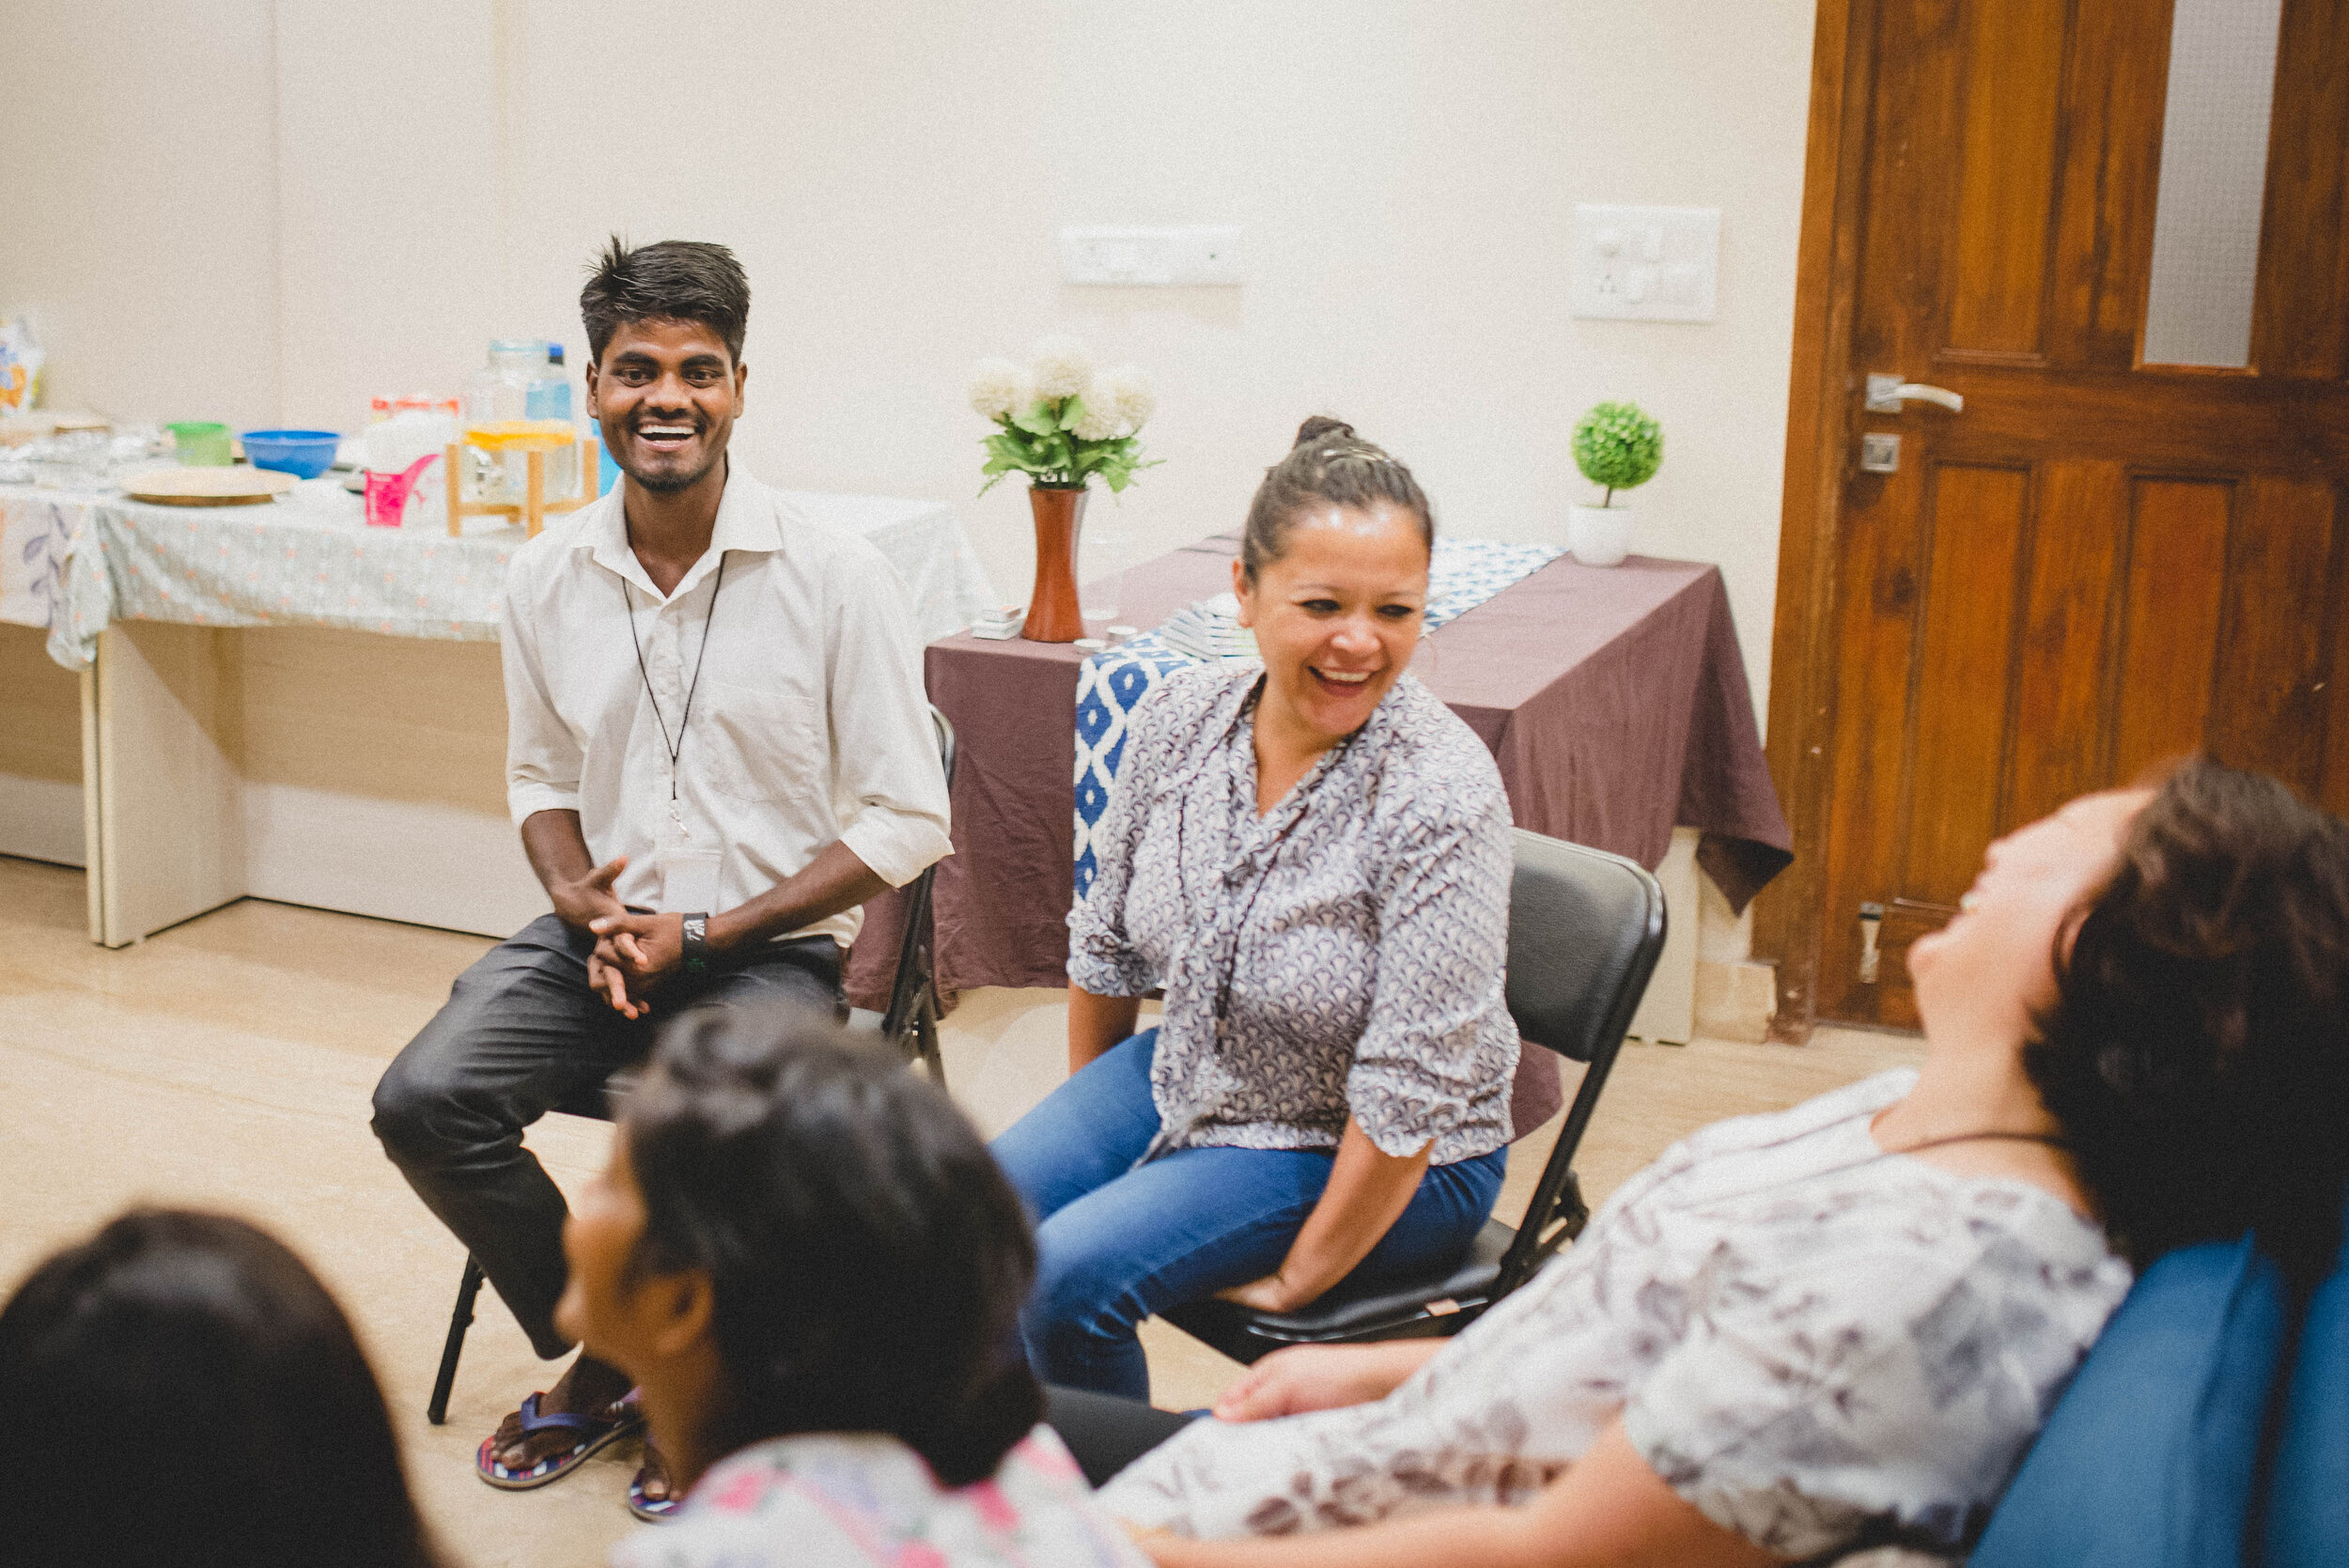 """In June, Niraj was one of the attendees of a Bible conference for Reflections participants. Reflections is our Friday night gathering of believers. Through times of teaching, worship, small group discussions, and games/skits, Niraj was able to receive biblical insight on the topic of """"Living in A Community of Christ."""""""